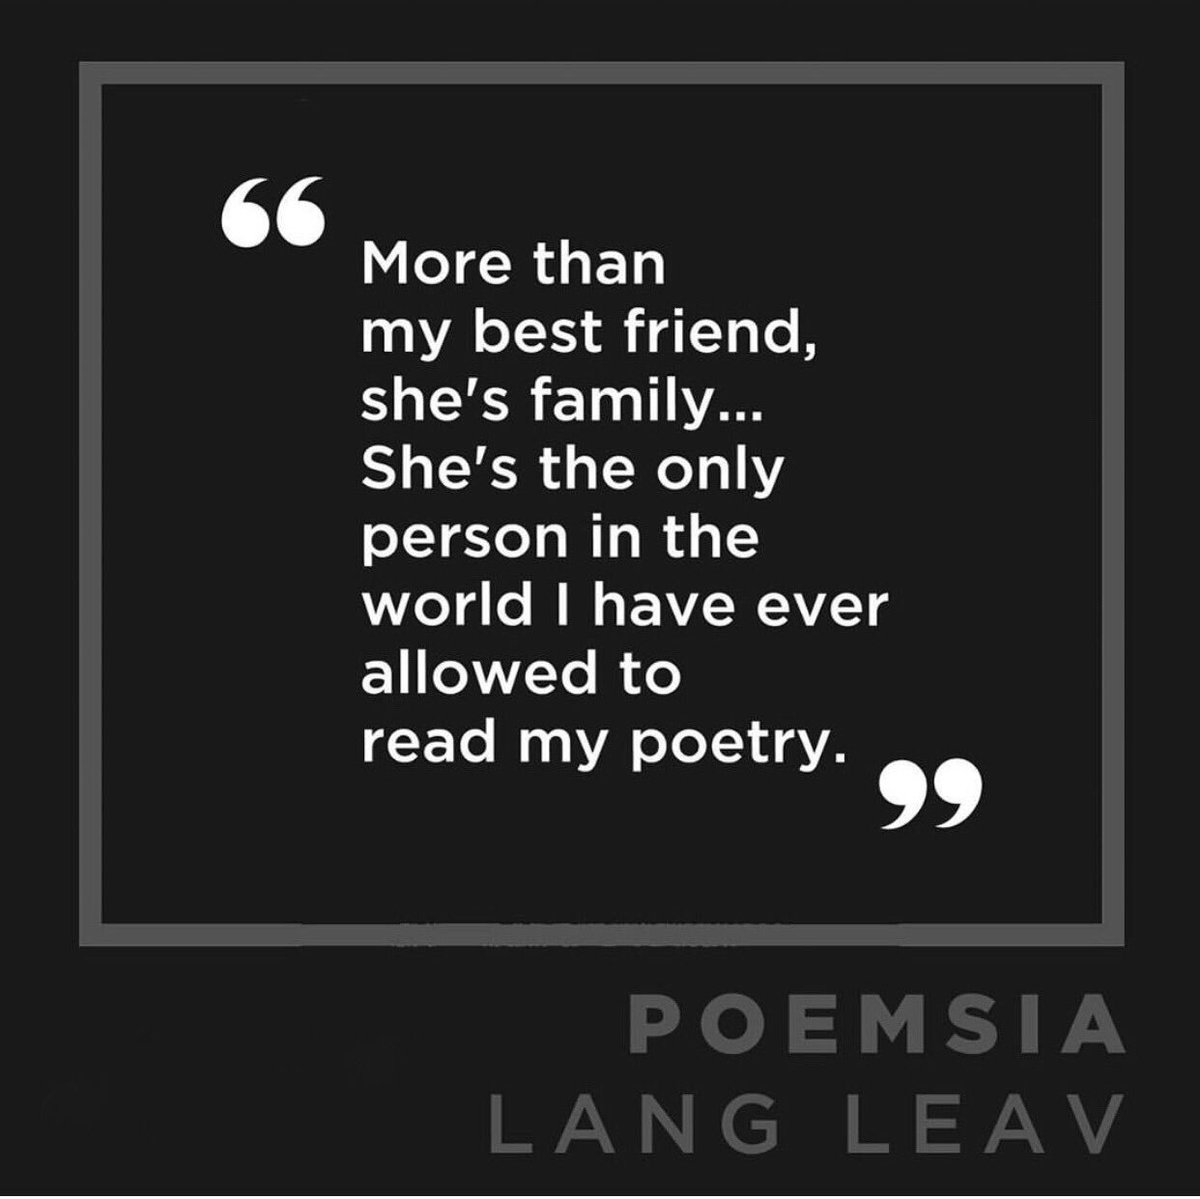 Who do you share your poetry with?